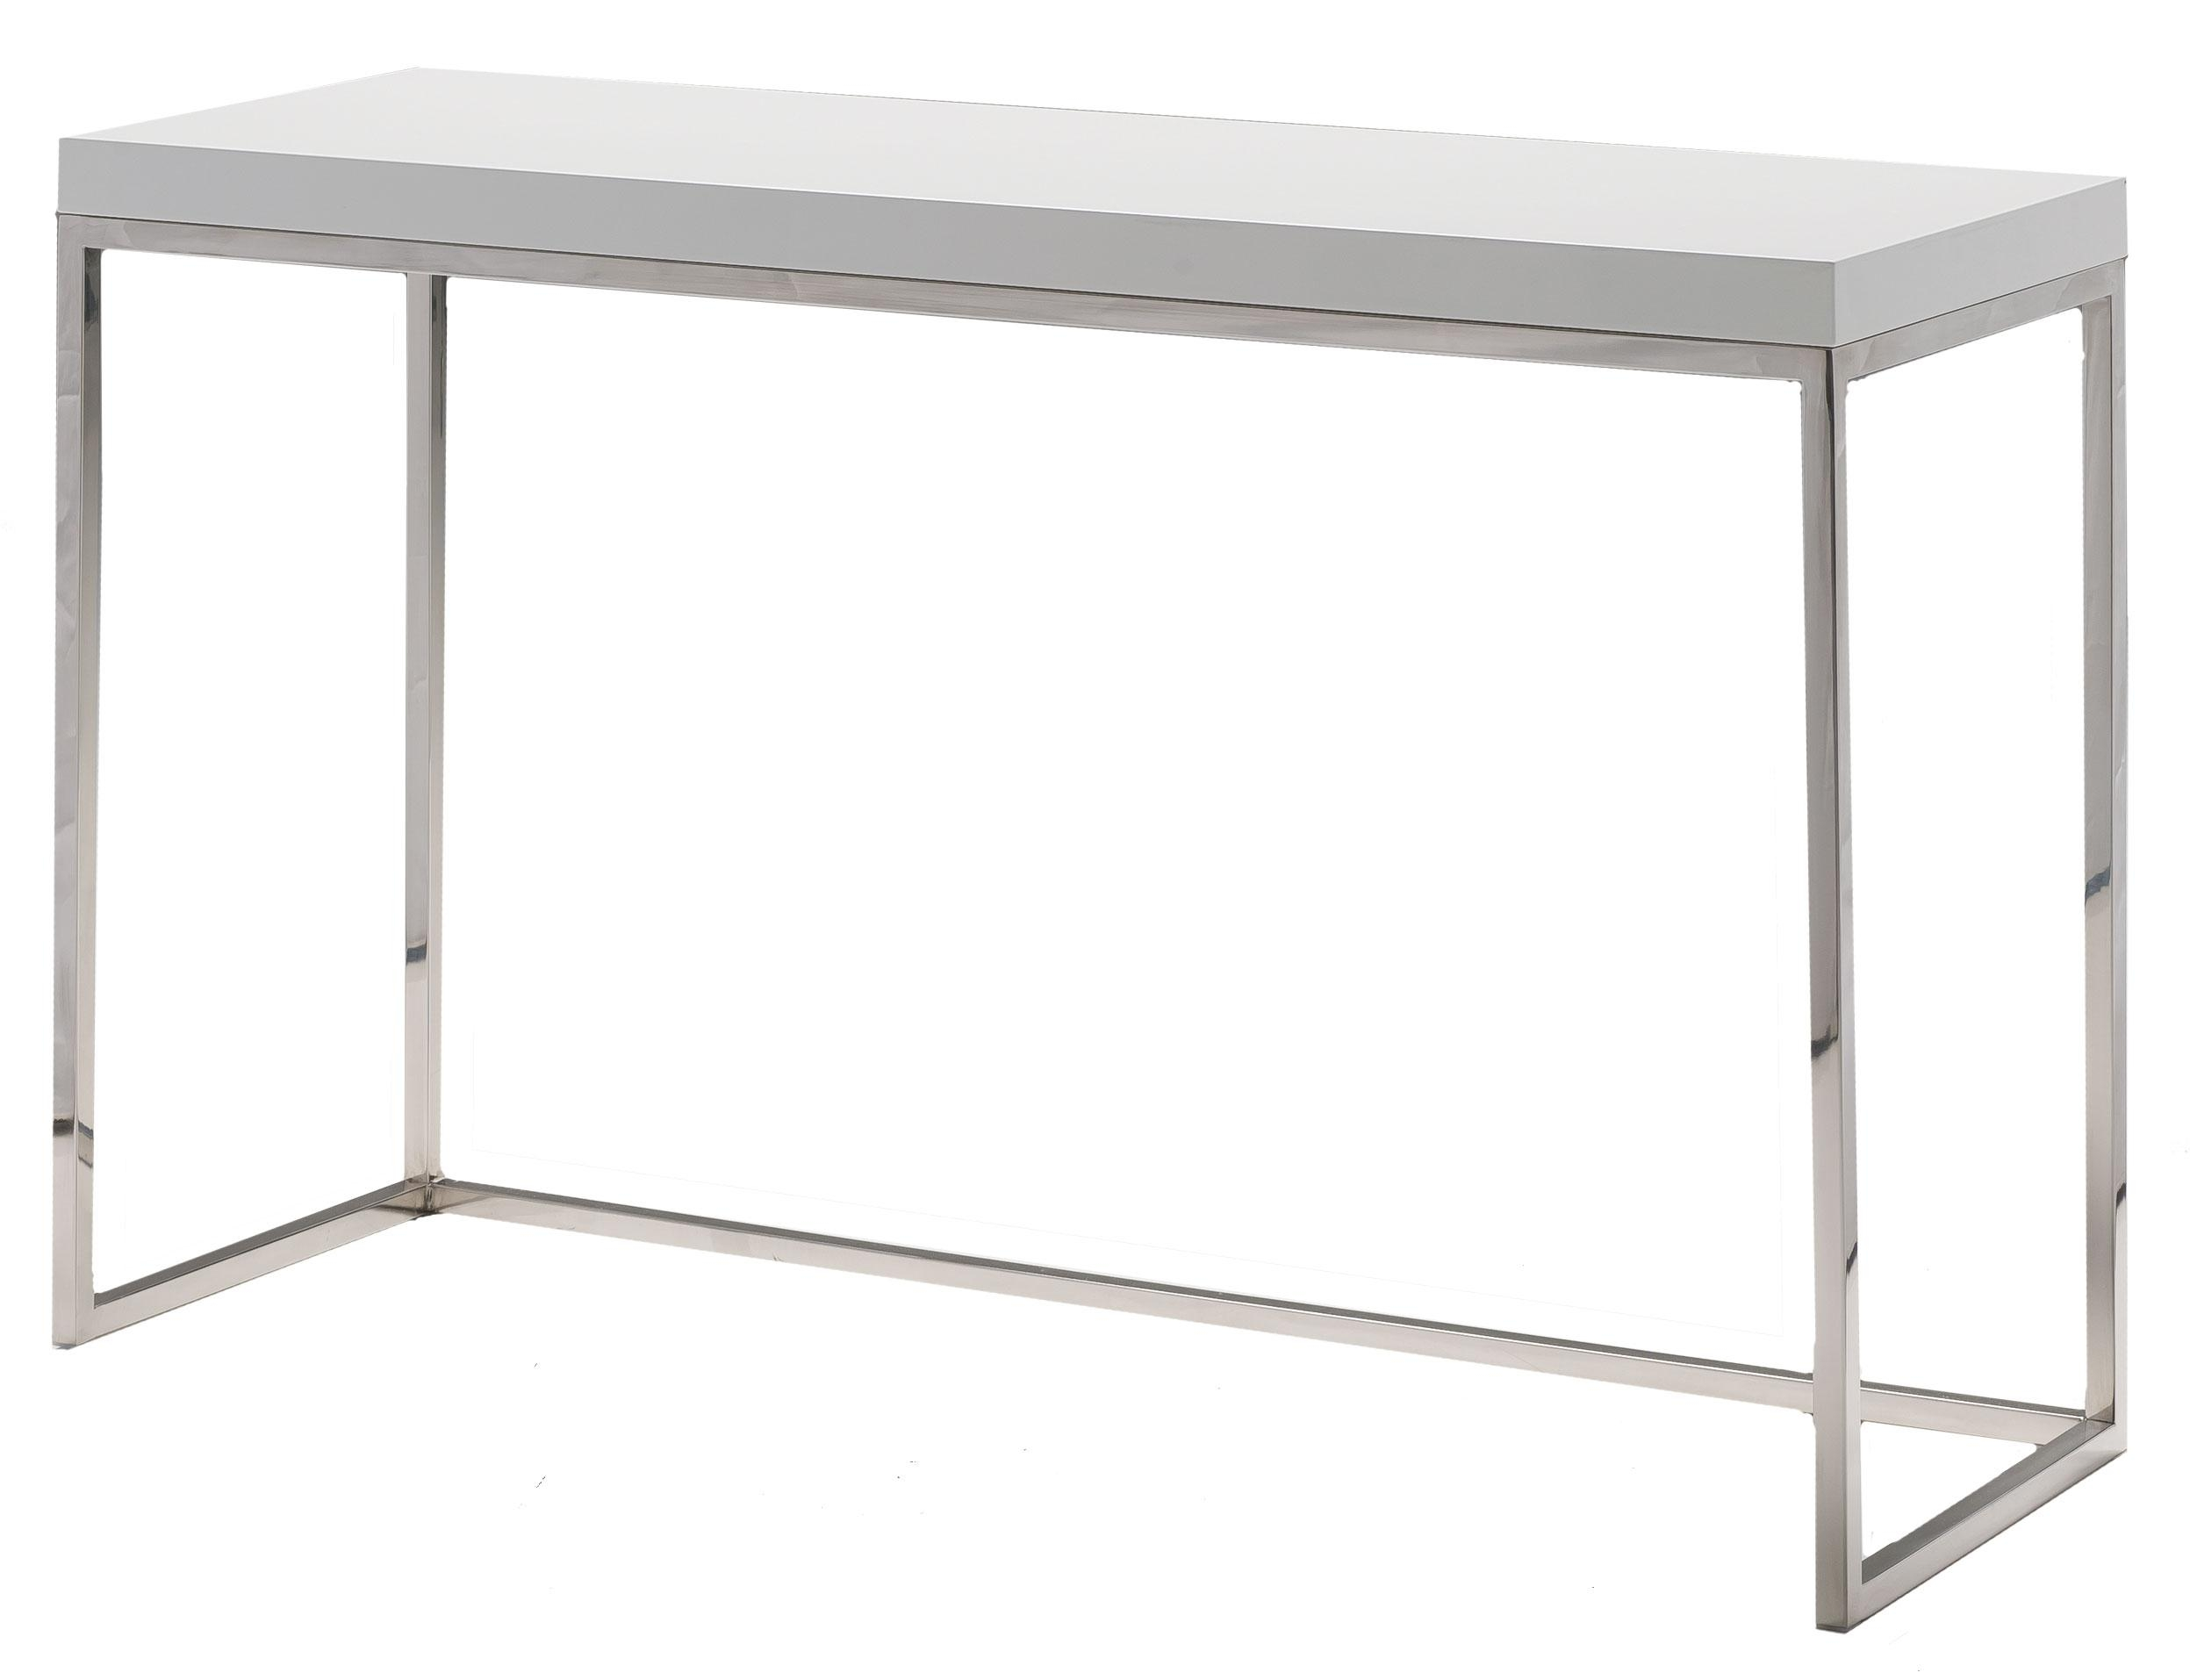 Outdoor Sofa Table Sofa Table Etsy – Modern Furniture Throughout Patio Sofa Tables (View 17 of 20)